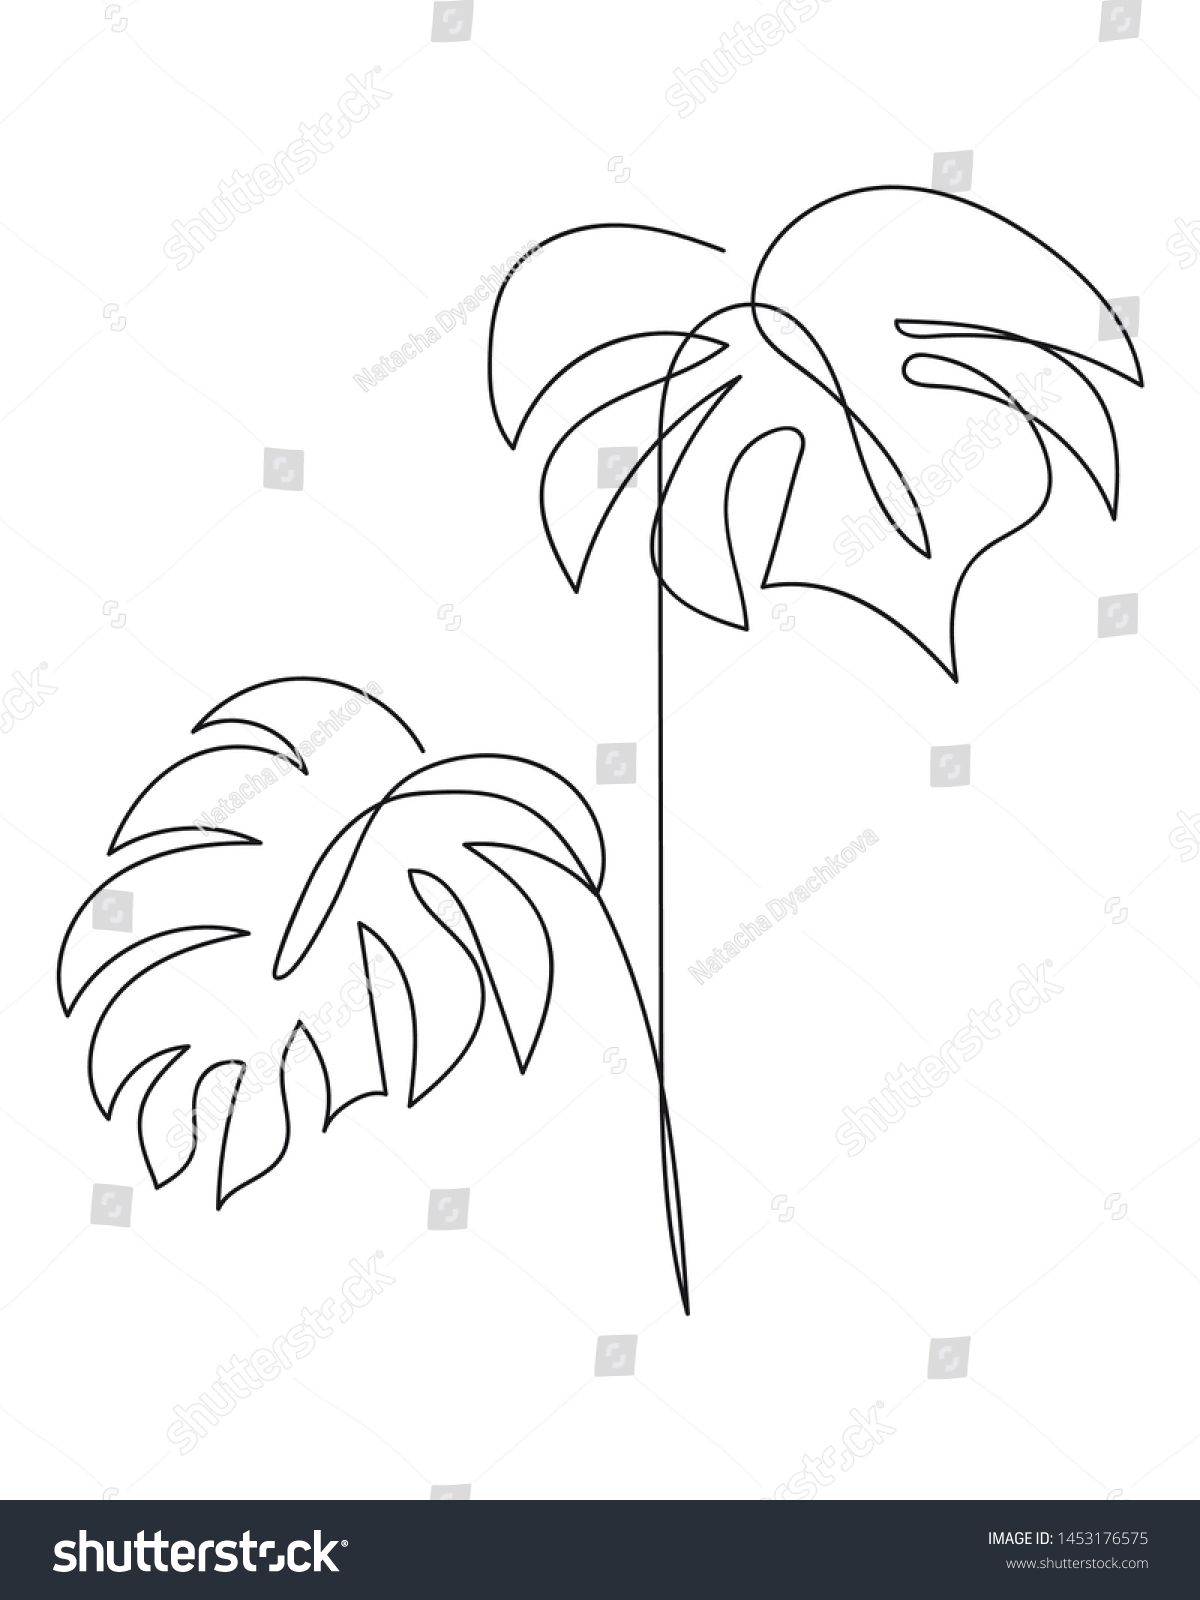 Line One Minimal Tropical Leaves Minimalist Leaves Design D Ontinuous Line Drawing Palm Leaf Vector Eps 10 Spons Line Drawing Leaf Drawing Abstract Images No physical print included after purchasing the item you will be able to instantly download your files. line one minimal tropical leaves